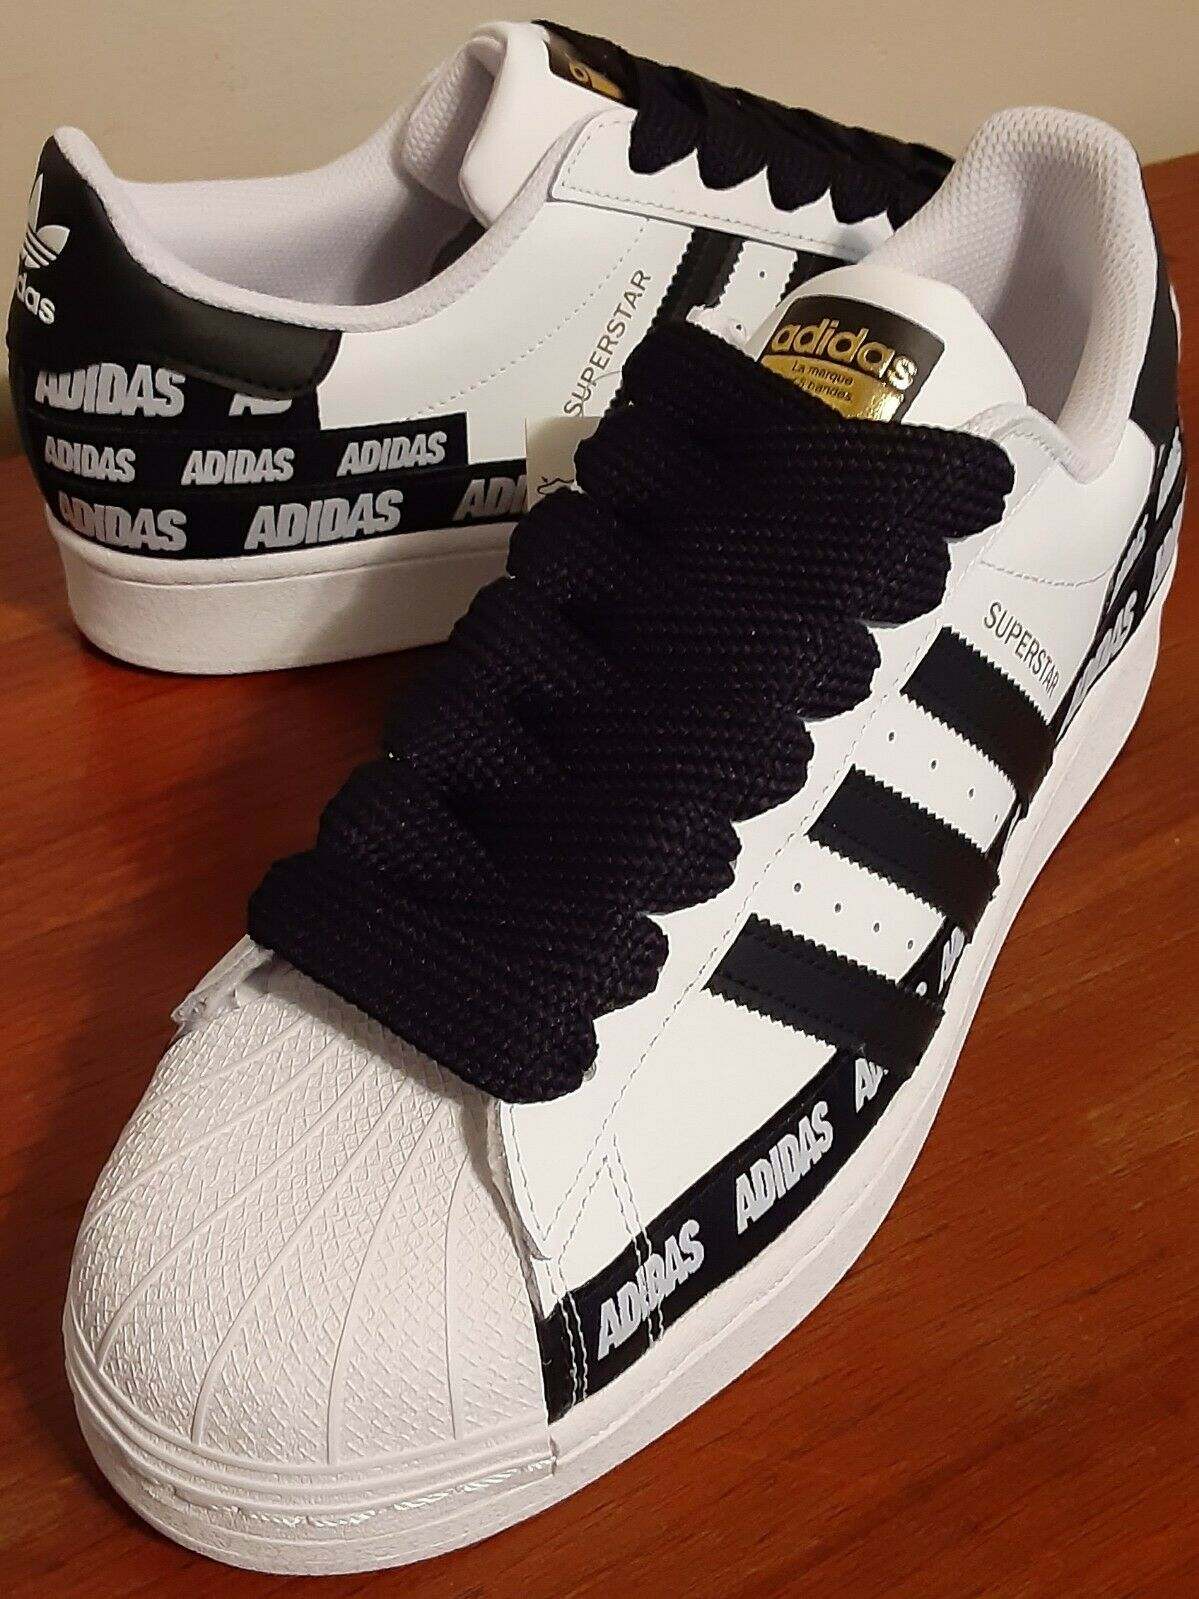 Adidas Superstar Sneakers/Shoes Shell Toe Mens Size 10.5 New With Box And Tags.  on eBay thumbnail